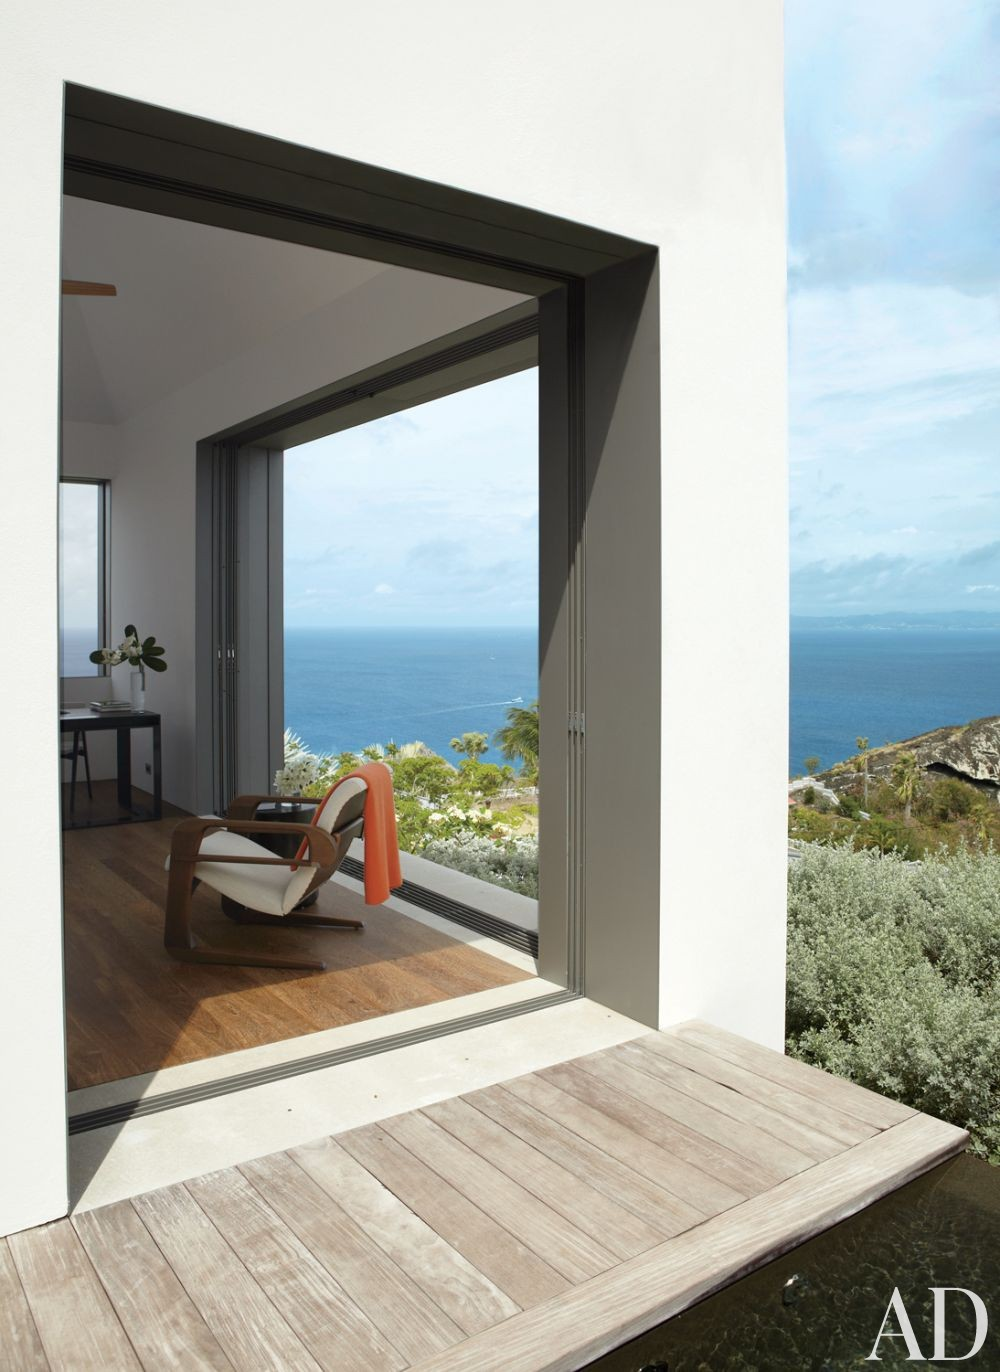 Modern Bedroom and Gwathmey Siegel & Associates Architects in St. Barts